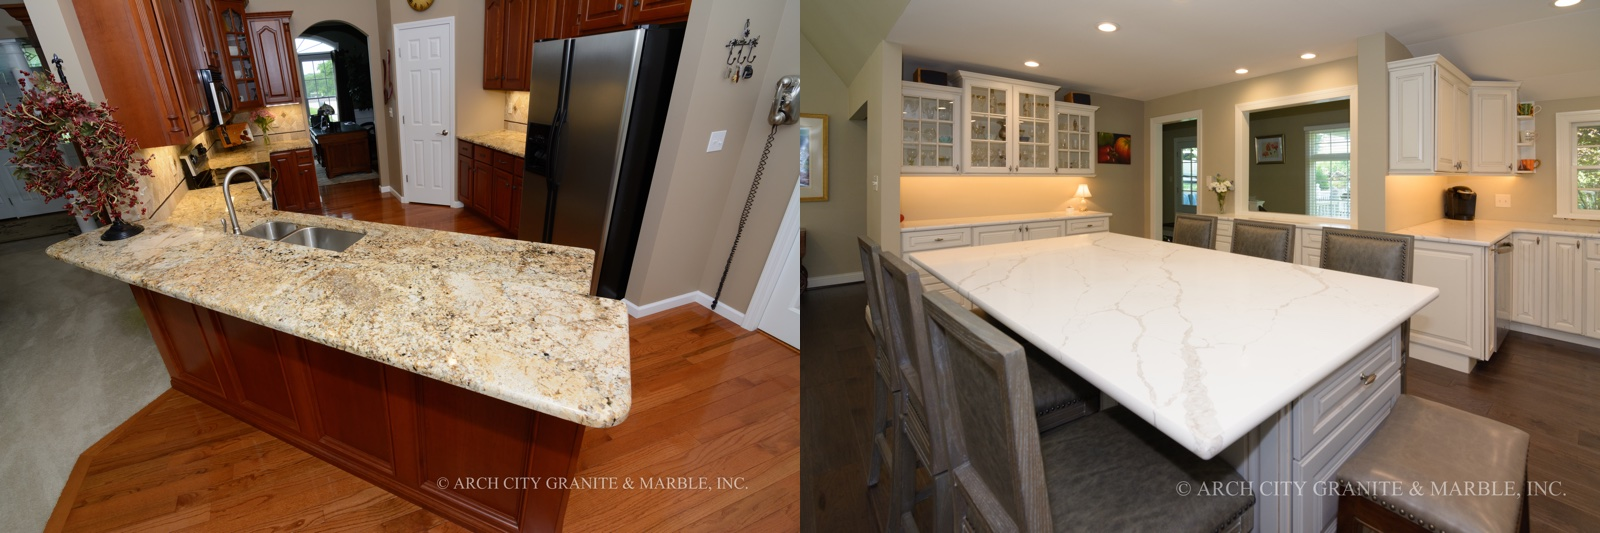 Quartz Countertops Granite Vs Quartz Price